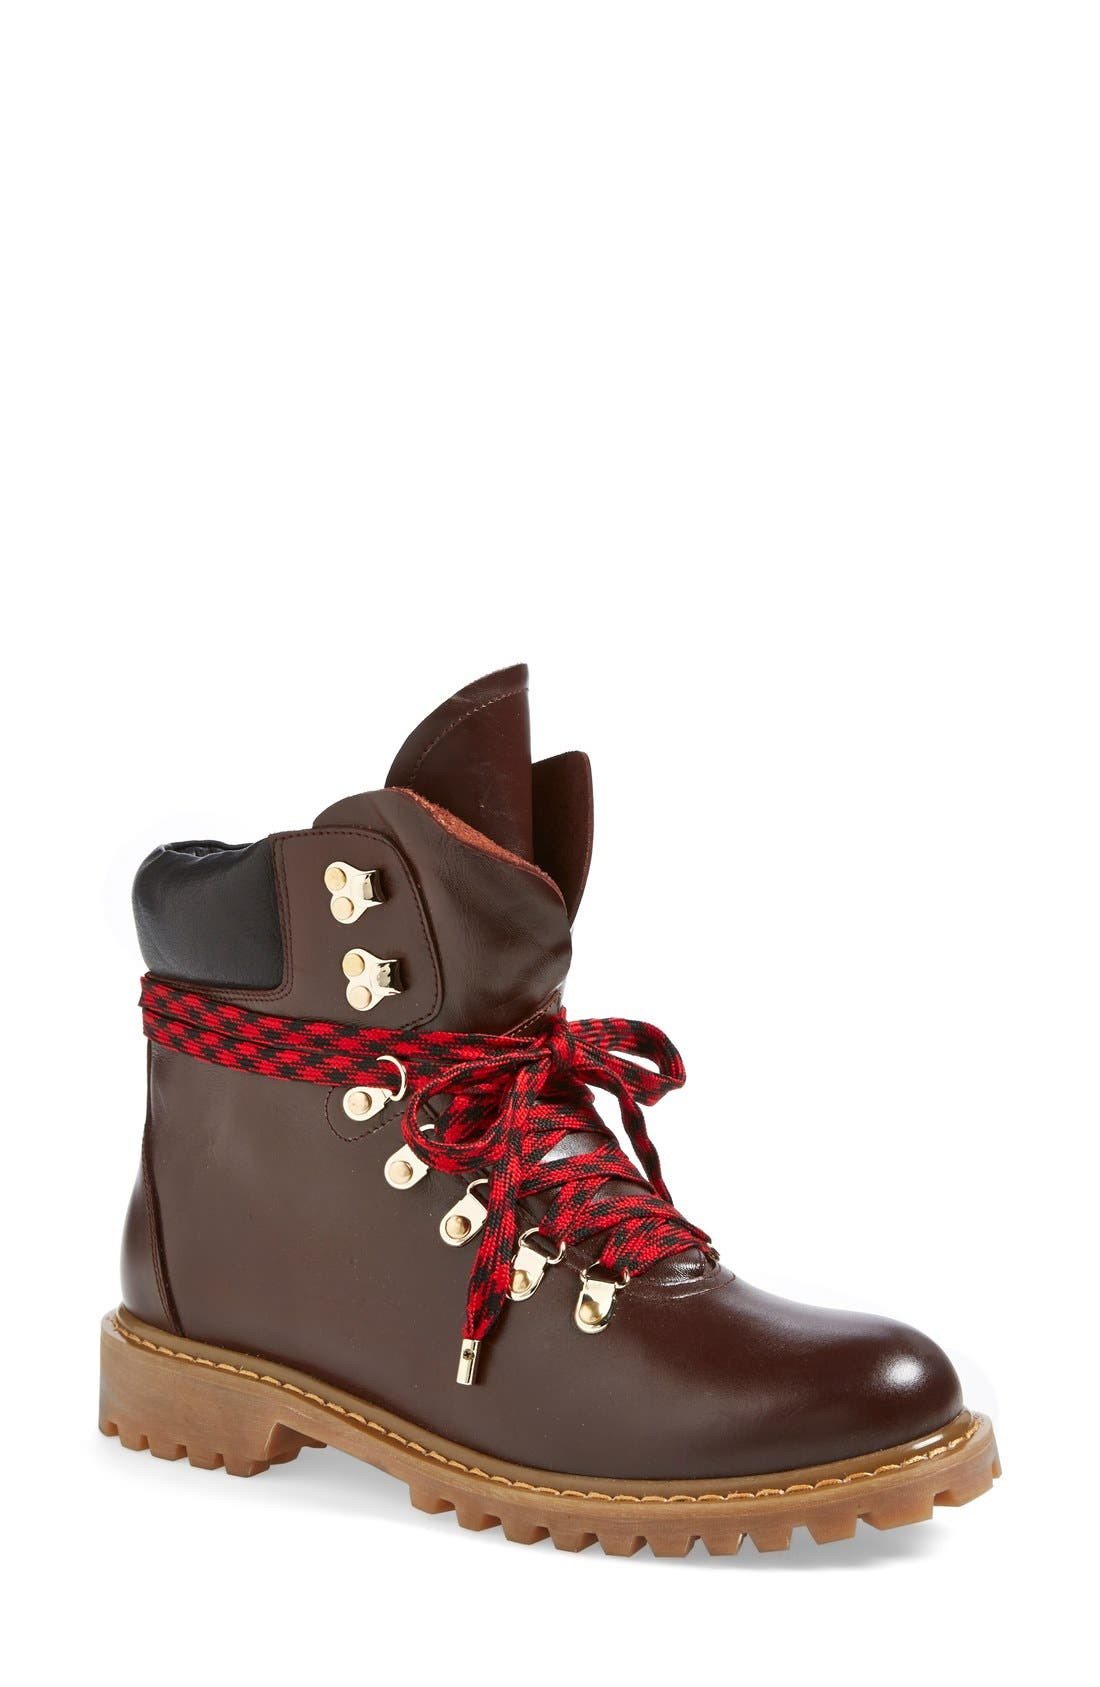 Alternate Image 1 Selected - Joie 'Norfolk' Leather Boot (Women)